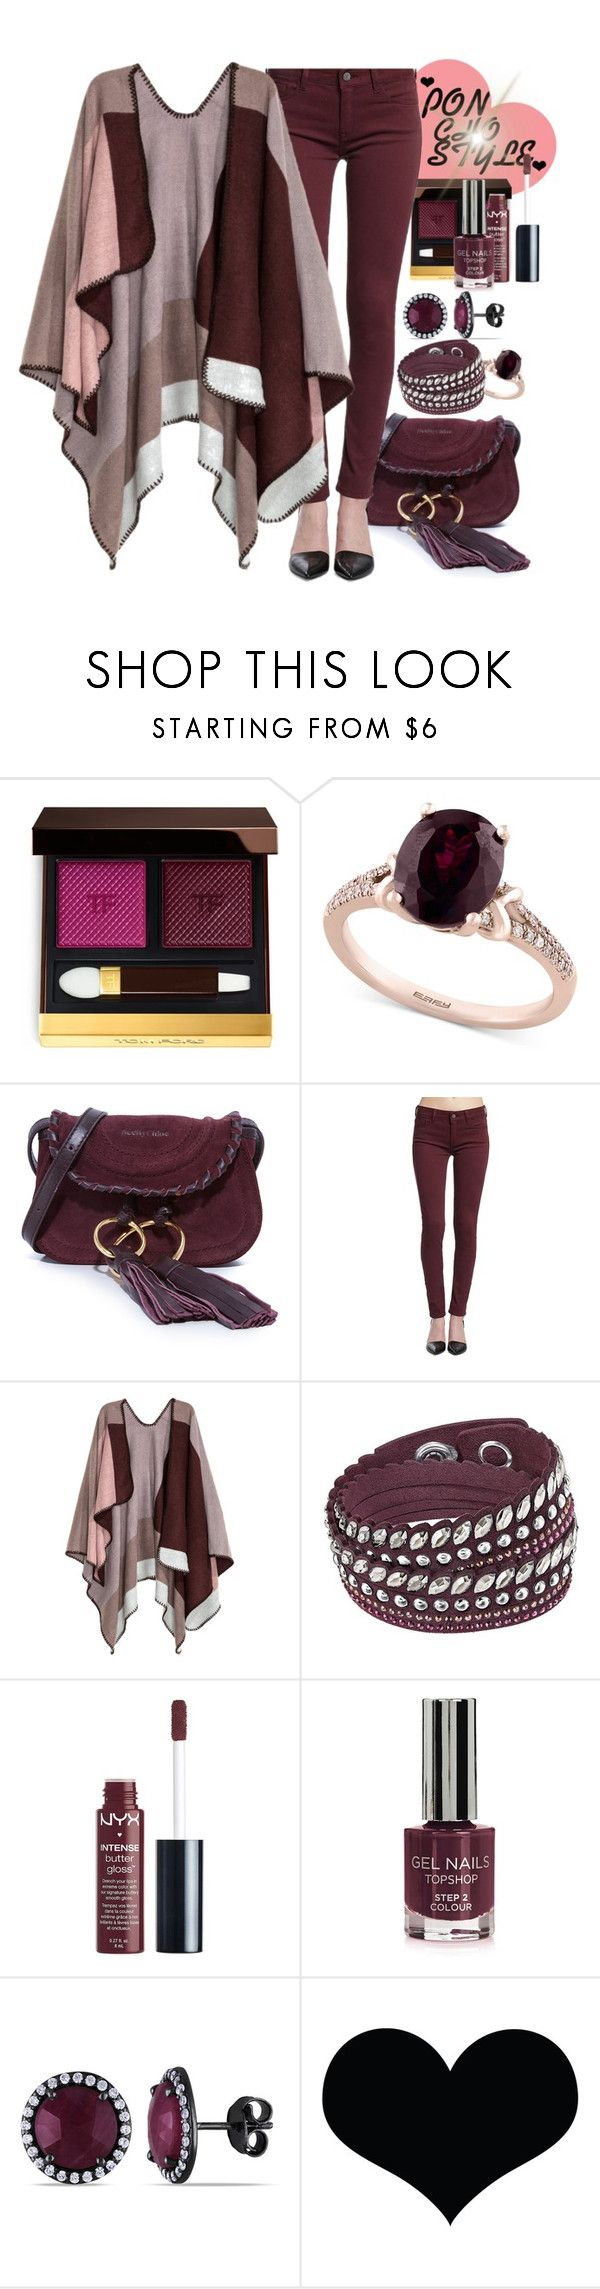 """Poncho Style"" by mmsbeg ❤ liked on Polyvore featuring Tom Ford, Effy Jewelry, See by Chloé, Mavi, H&M, Swarovski, Charlotte Russe, Topshop, Ice and Brika"